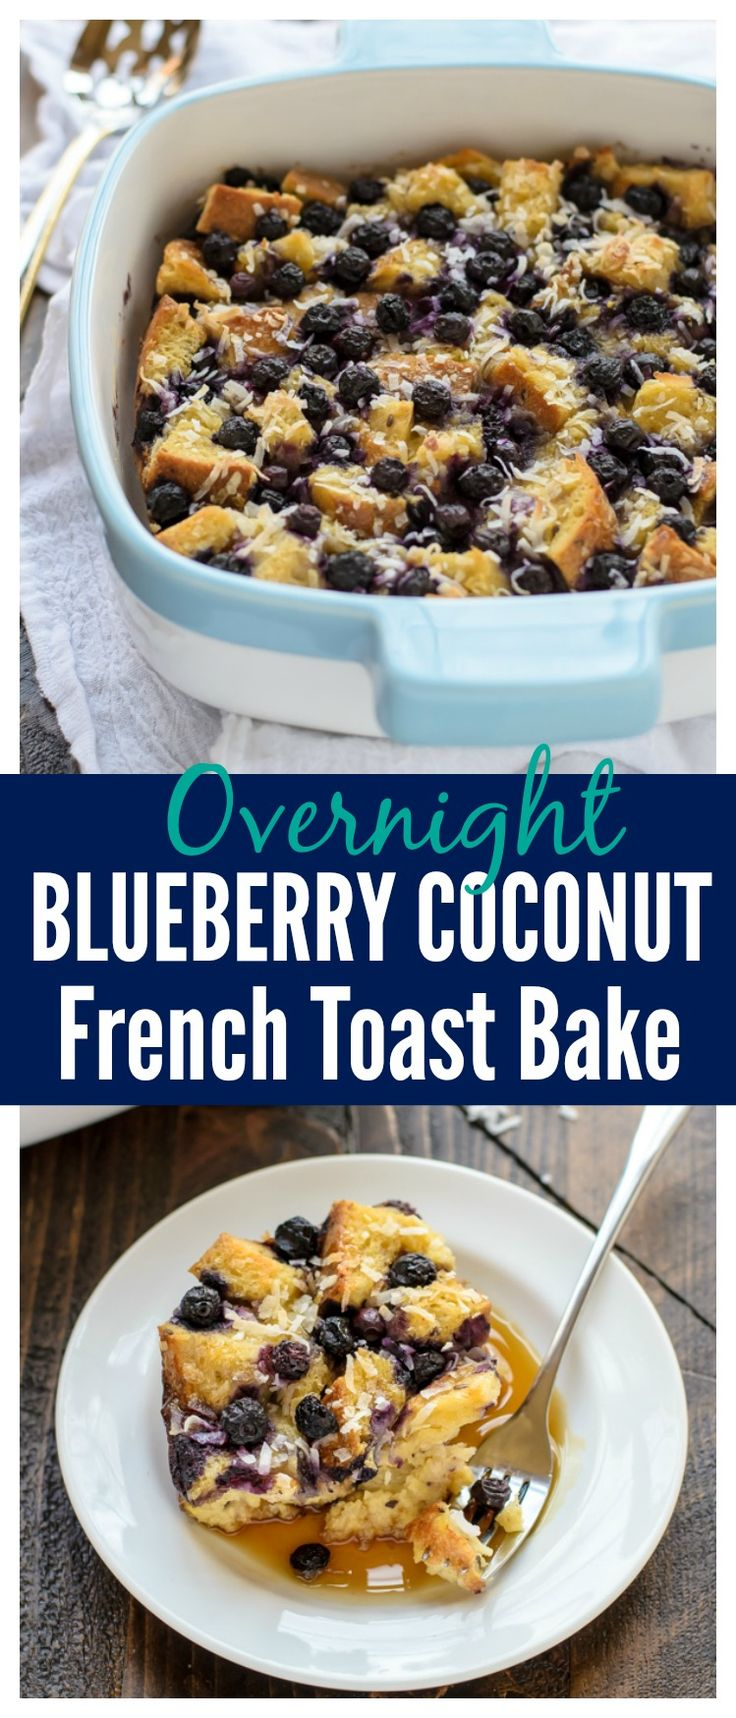 Overnight Blueberry Coconut French Toast Casserole. Great breakfast idea when you have company!